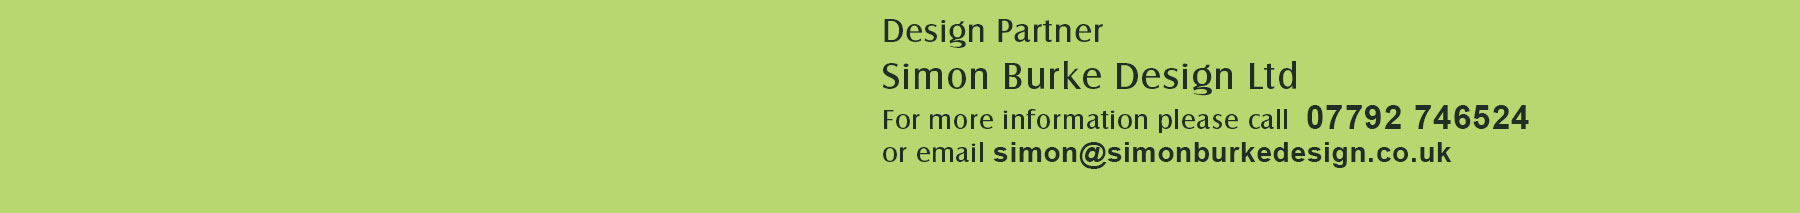 simon burke design ltd